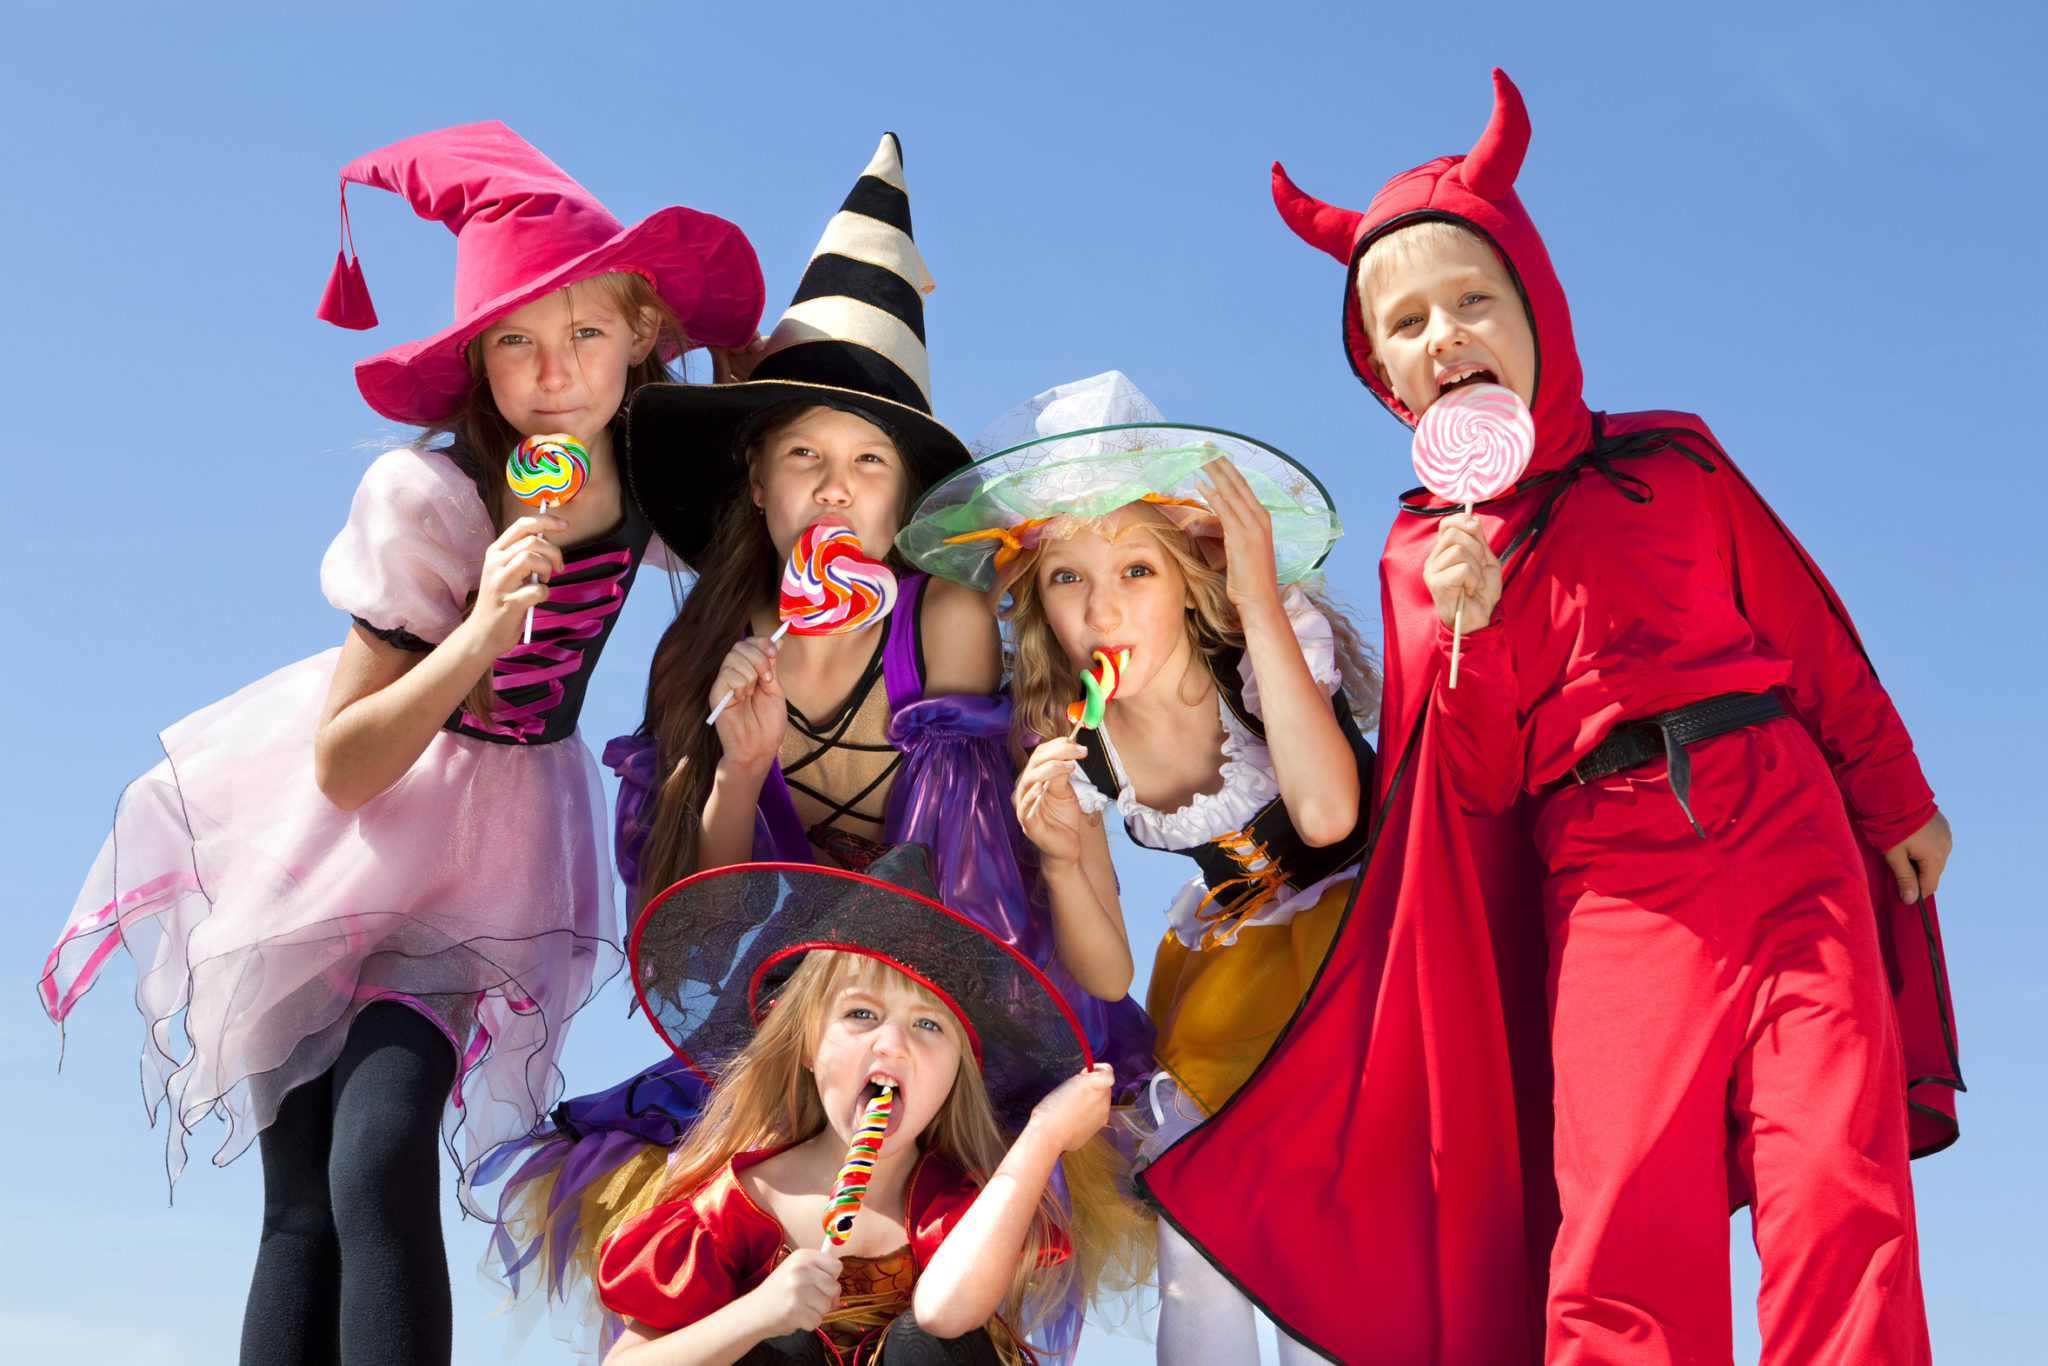 Five Children in Halloween Costumes Witches and Demon Licking their Candies.